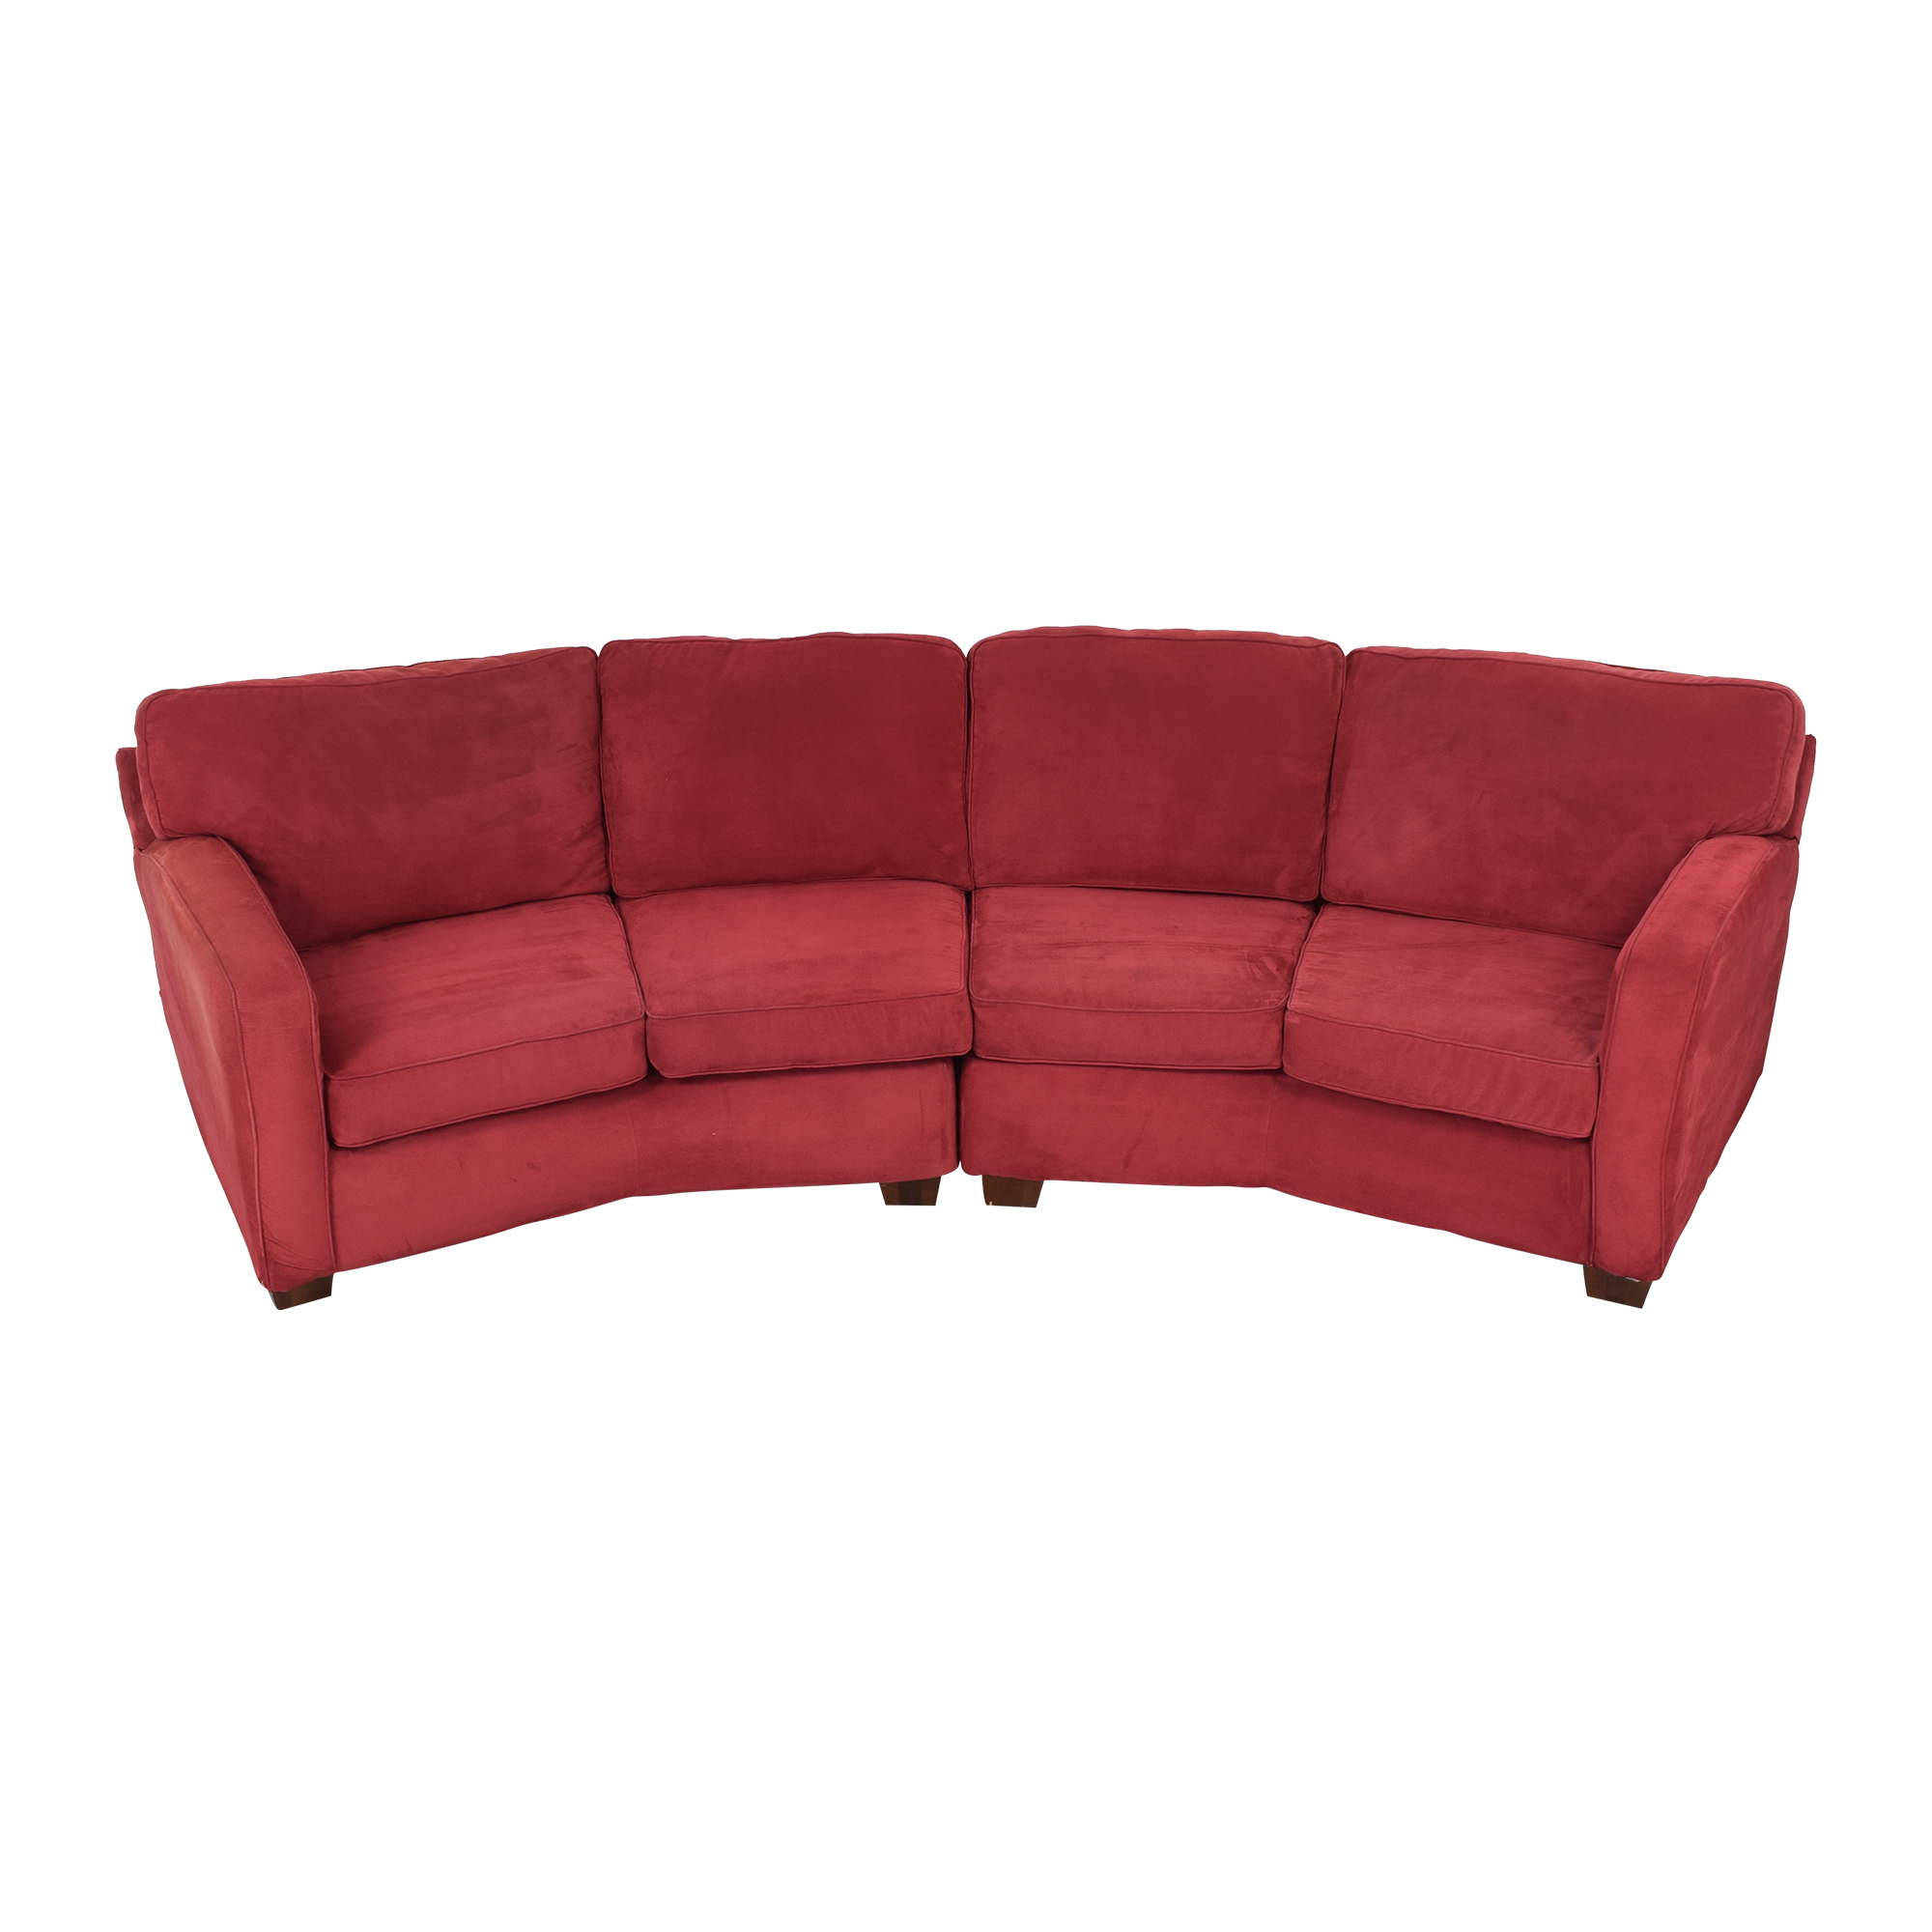 United Furniture United Furniture Curved Sectional Sofa